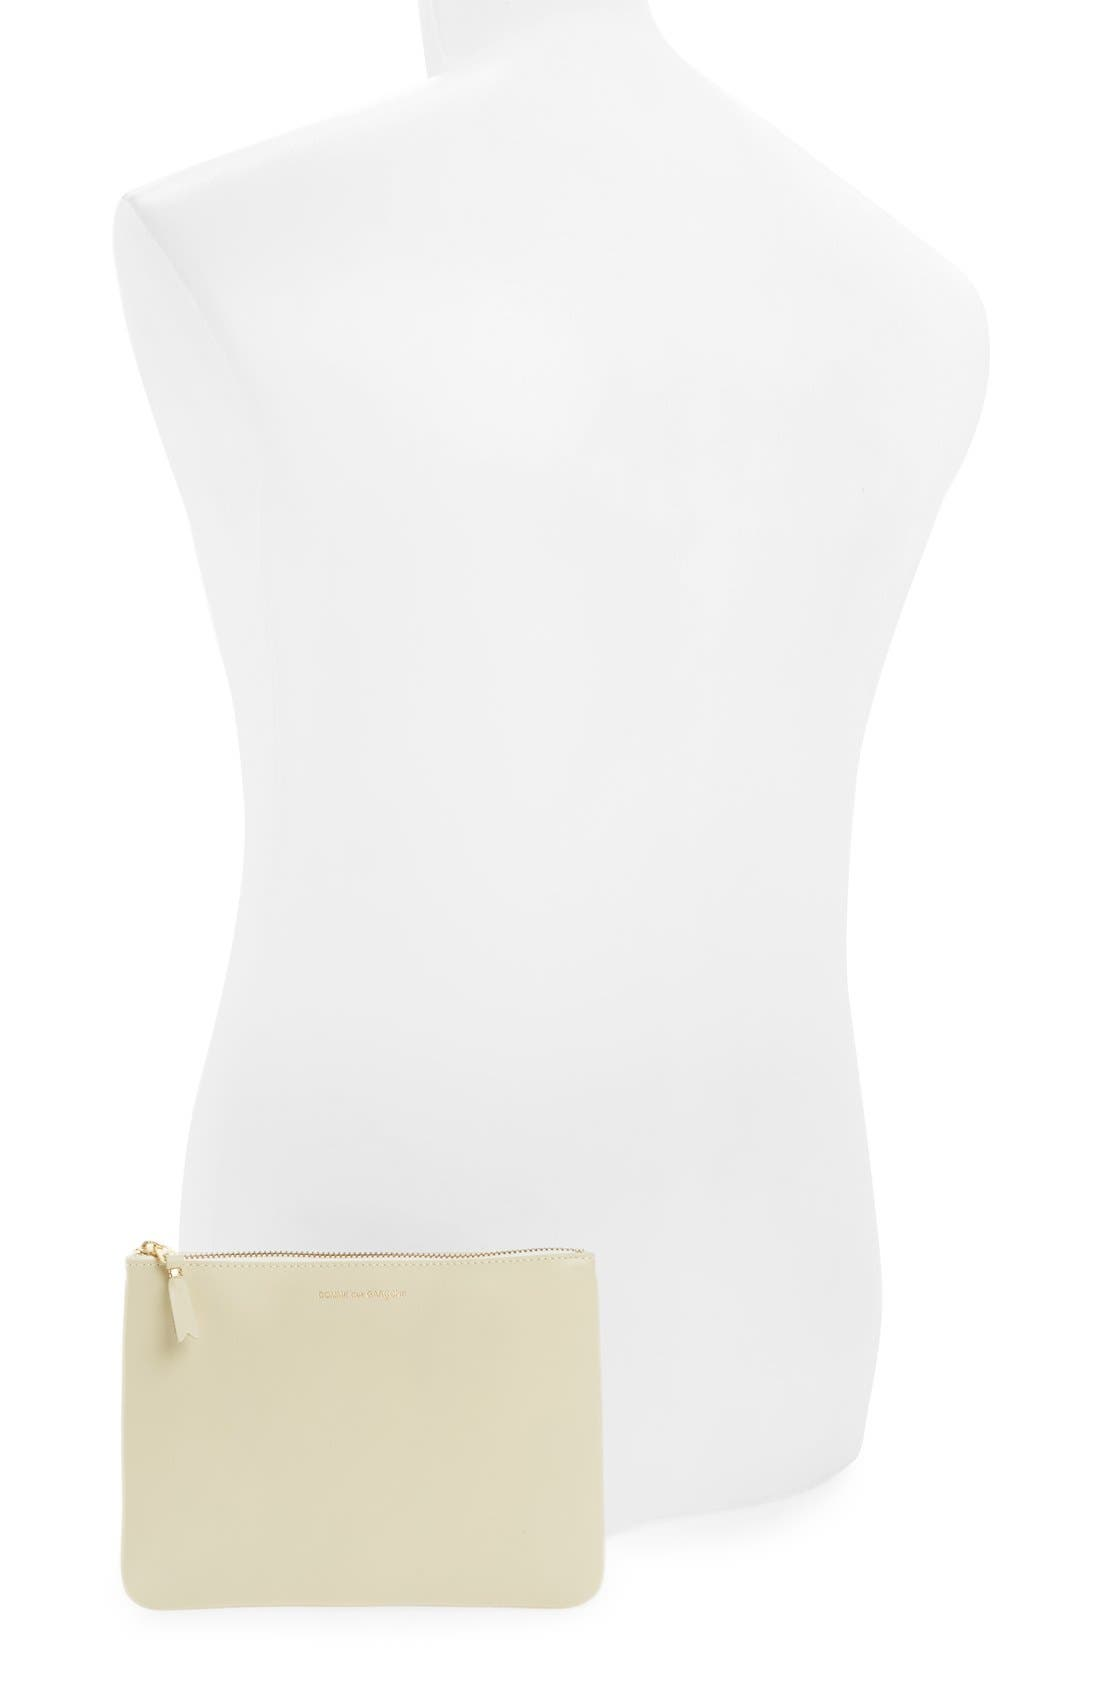 Medium Classic Leather Zip-Up Pouch,                             Alternate thumbnail 3, color,                             Off White